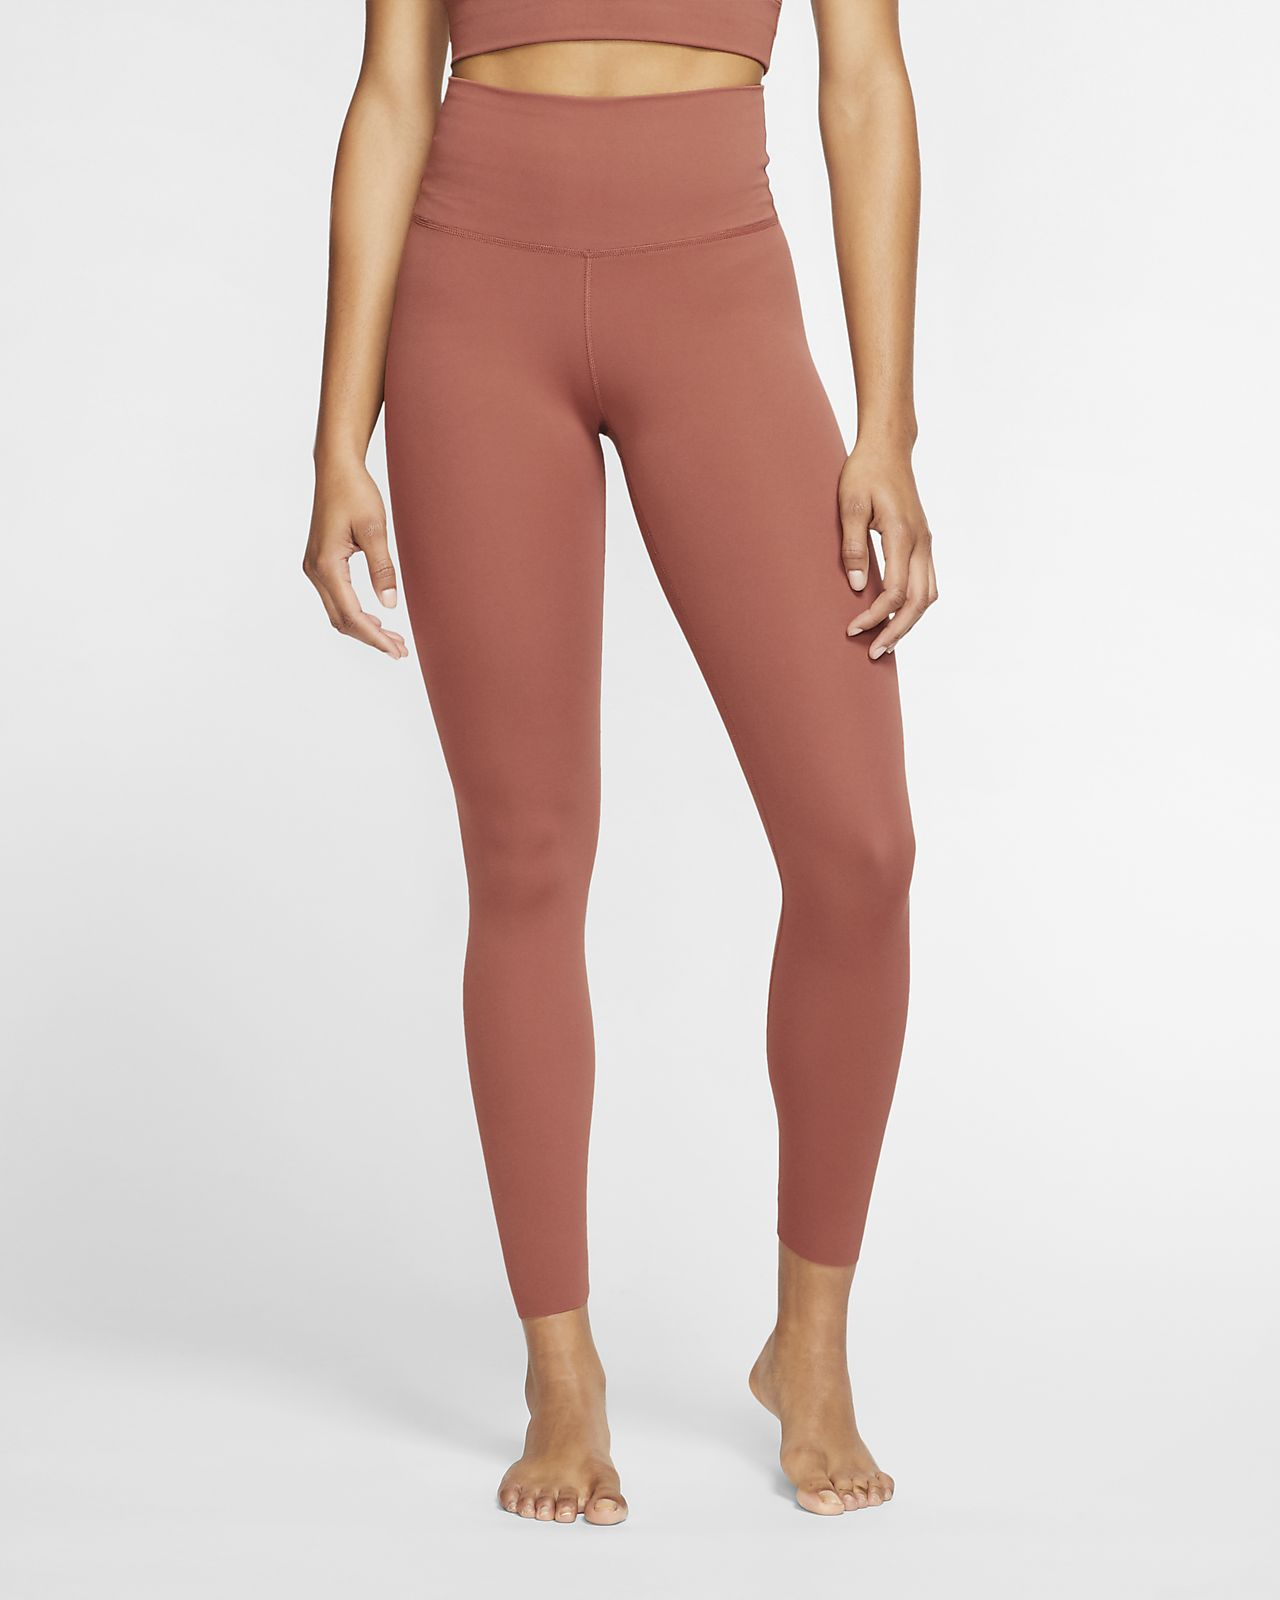 Nike Yoga Luxe Women's Infinalon 7/8 Tights